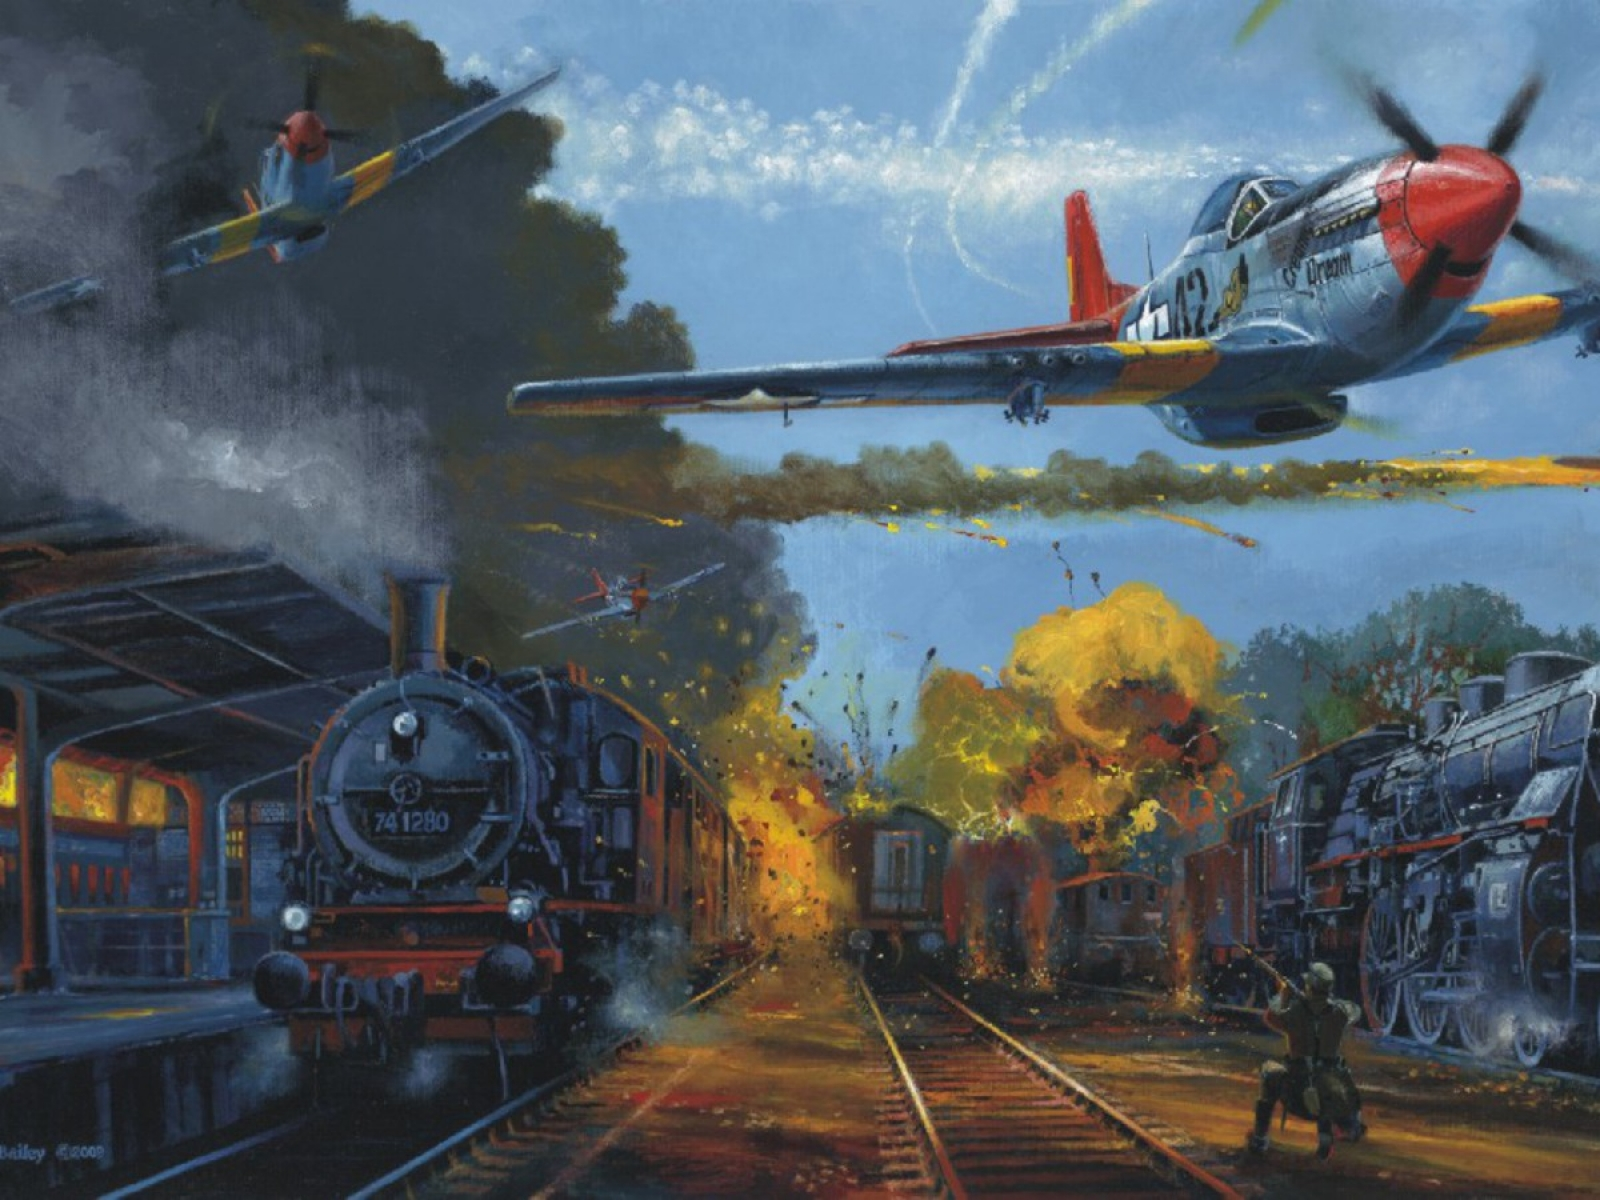 p-51 mustang makes an attack on a german train station. wallpaper